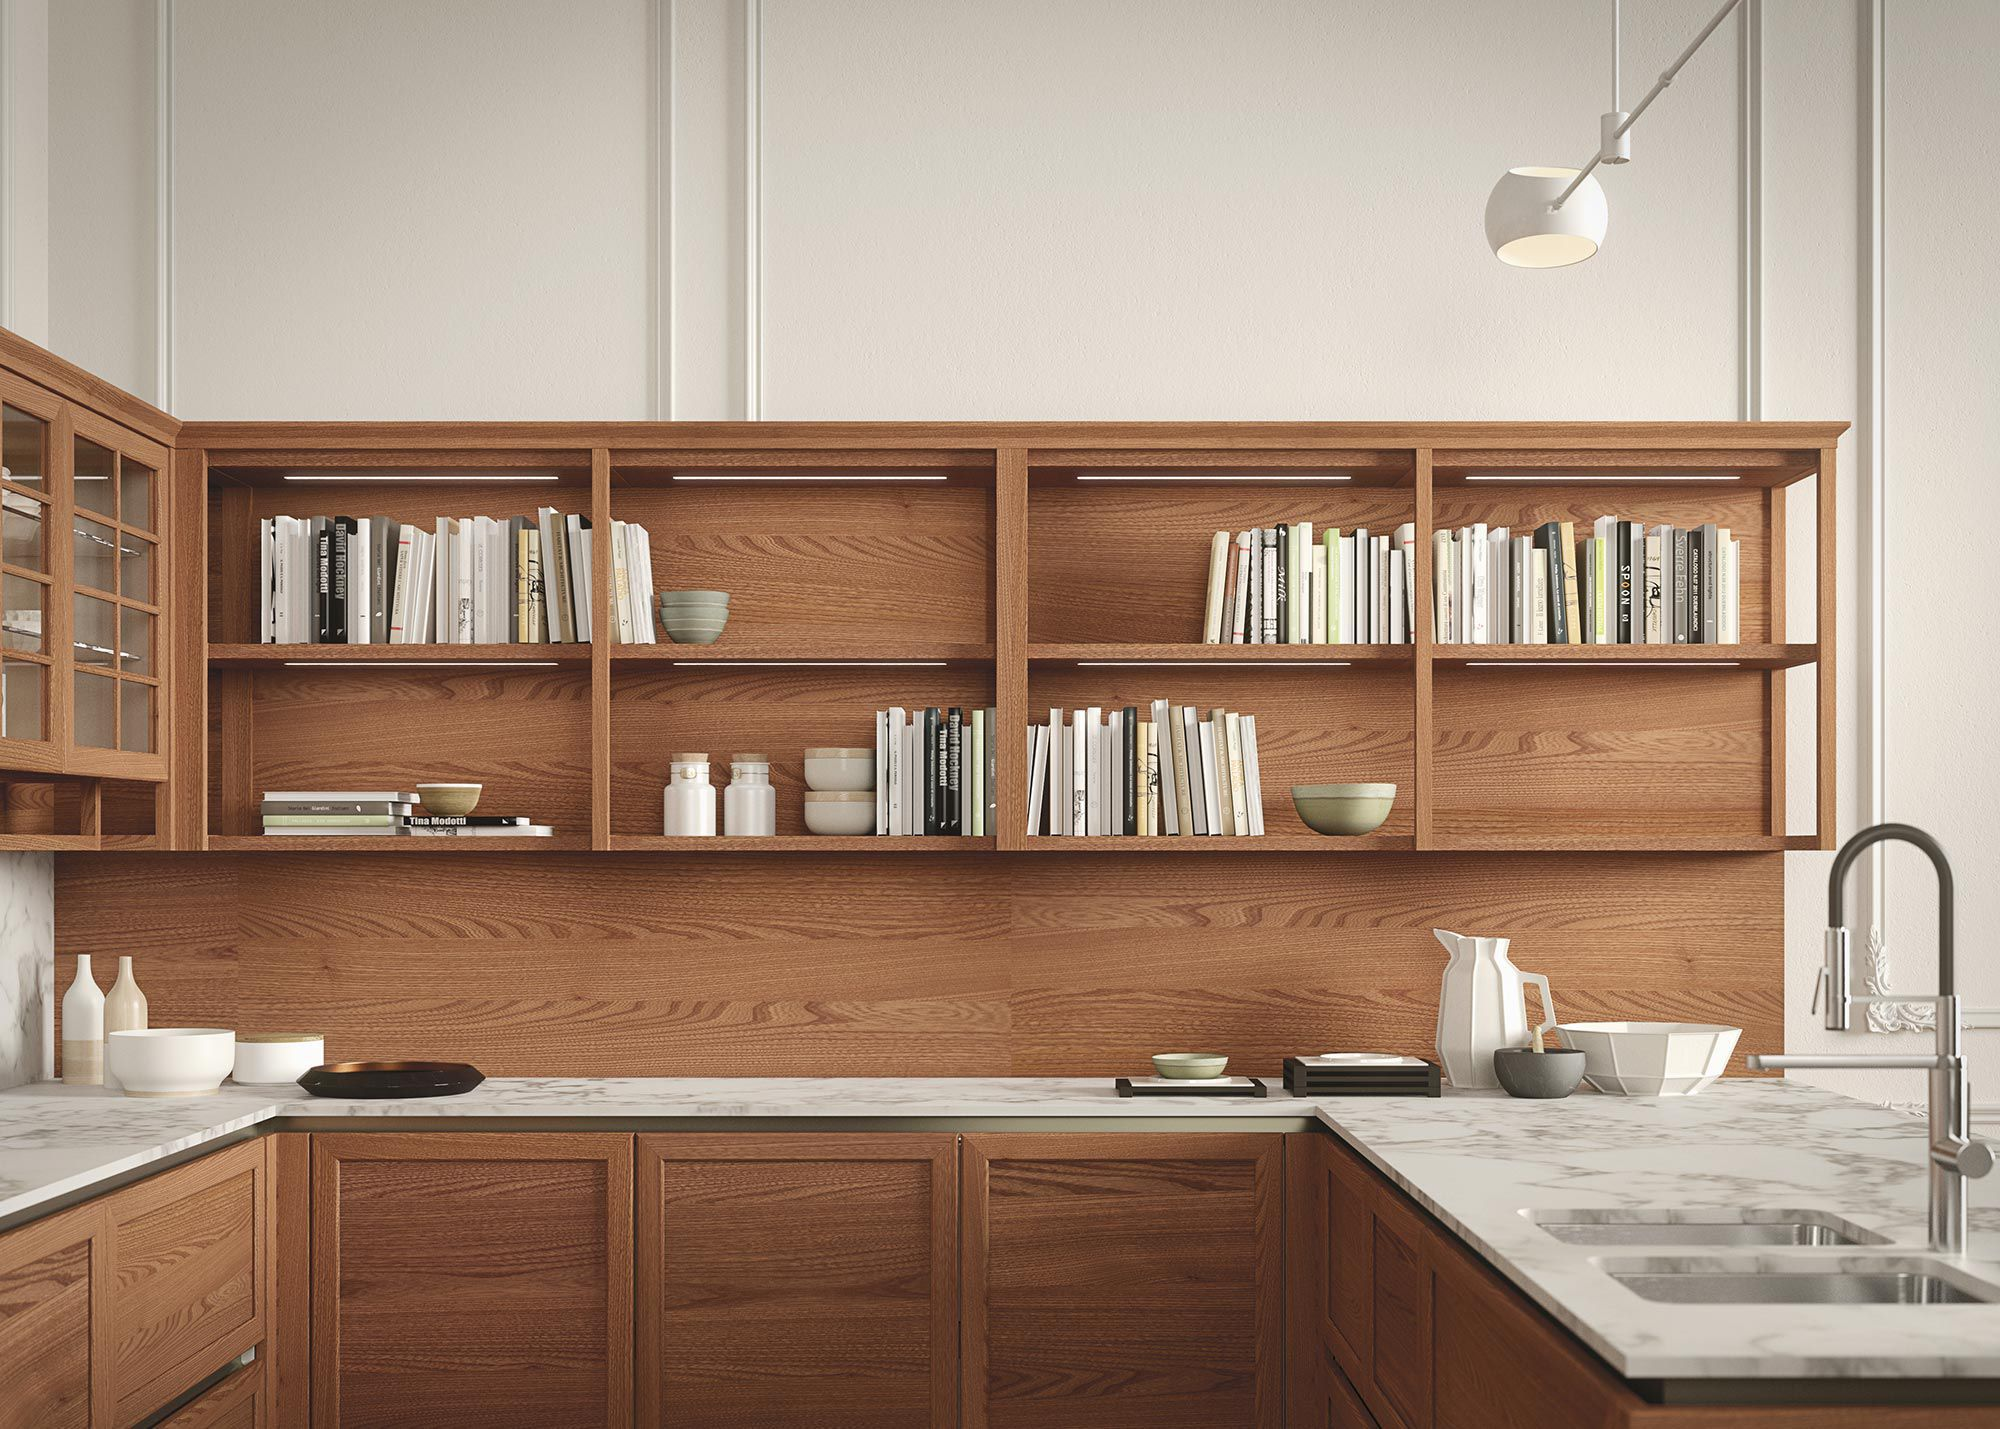 Cucina classica / in olmo / modulare / con isola - HERITAGE by ...